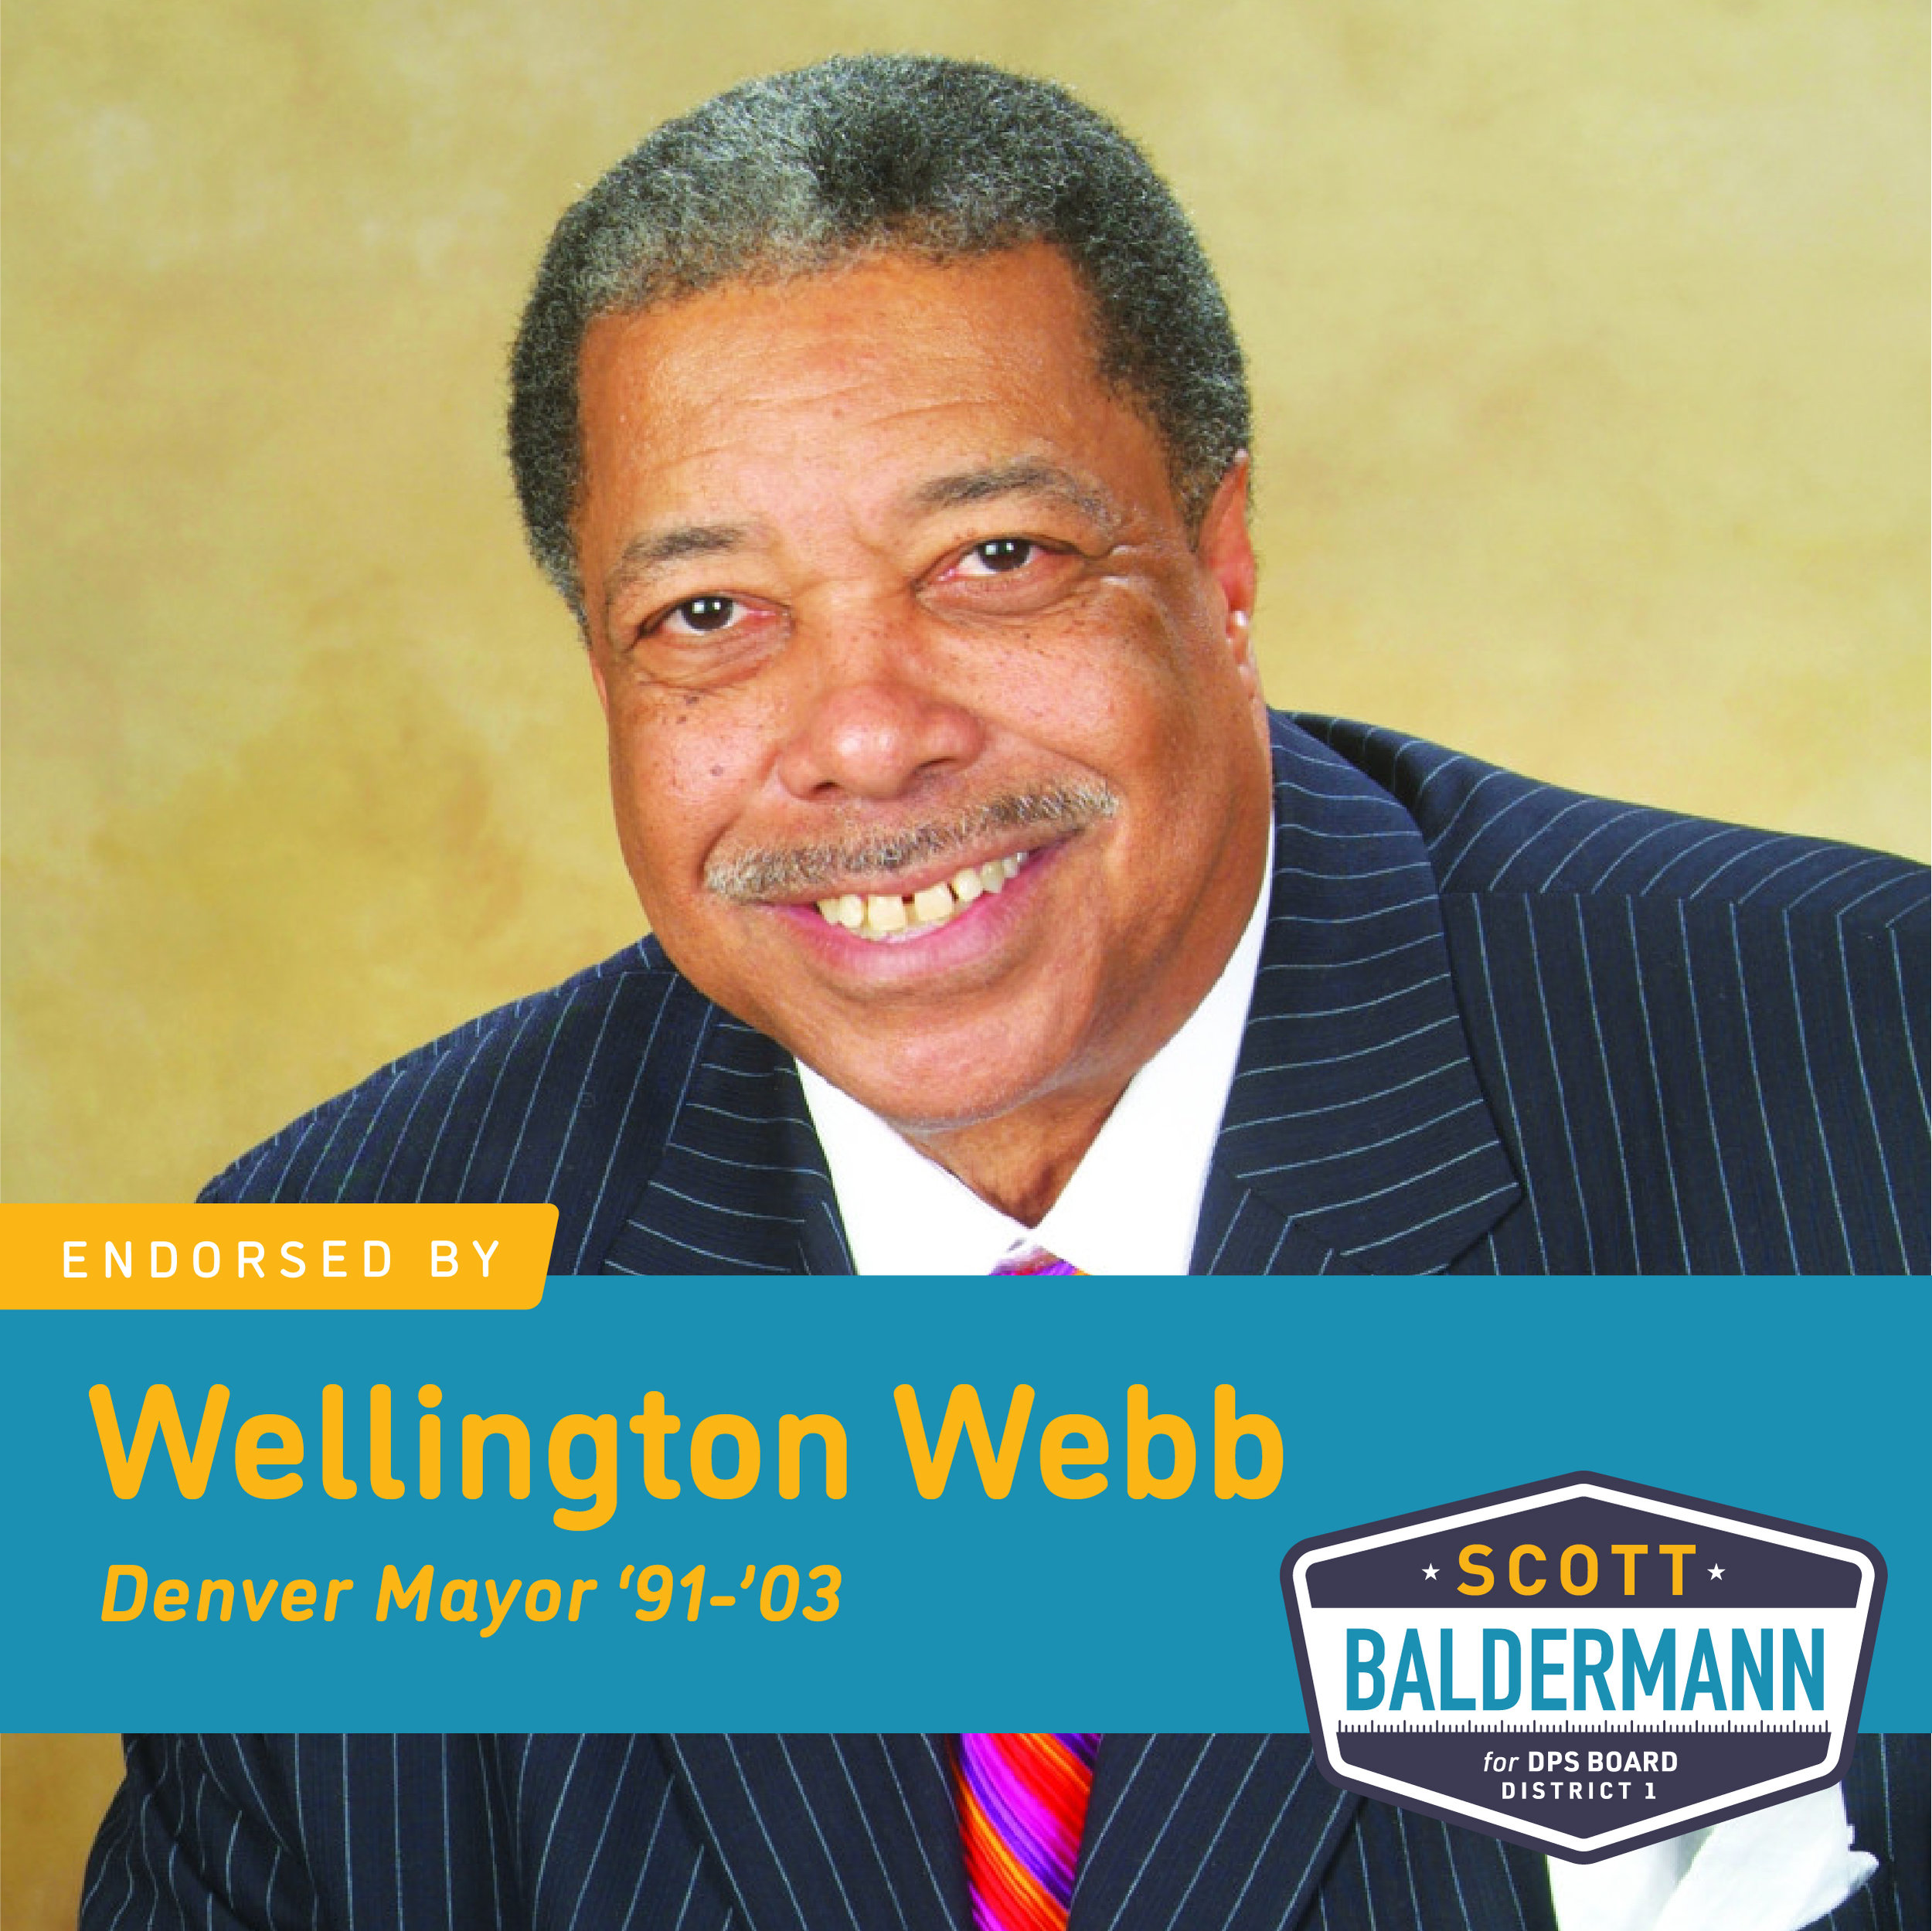 Wellington Webb - The Denver Public Schools philosophy of education reform has destroyed Cole Junior High and Manual High School, which houses three different schools. the current DPS Board of Education's philosophy of education reform is not addressing these concerns and other issues. Therefore, I am endorsing a slate of three new candidates for the board supported by the Denver Classroom Teachers Association. They are: Tay Anderson for At-Large, Scott Baldermann for District 1, and Brad Laurvick for District 5. The recent Denver City Council election showed that voters expect accountability form their elected officials. The same should be true for the DPS Board of Education election this November.